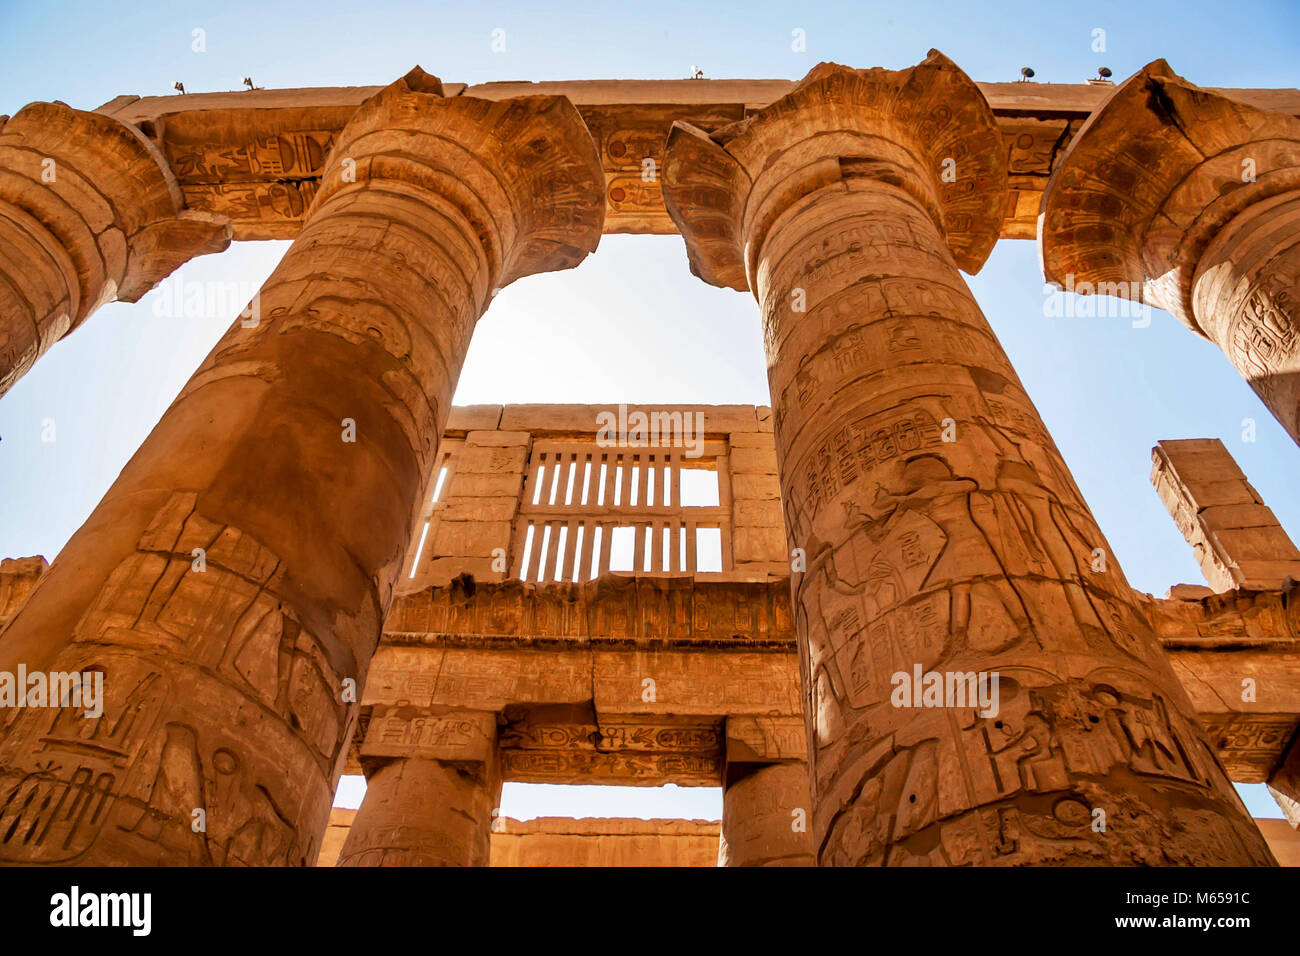 Great hypostyle hall at Temples of Karnak in Luxor - Stock Image